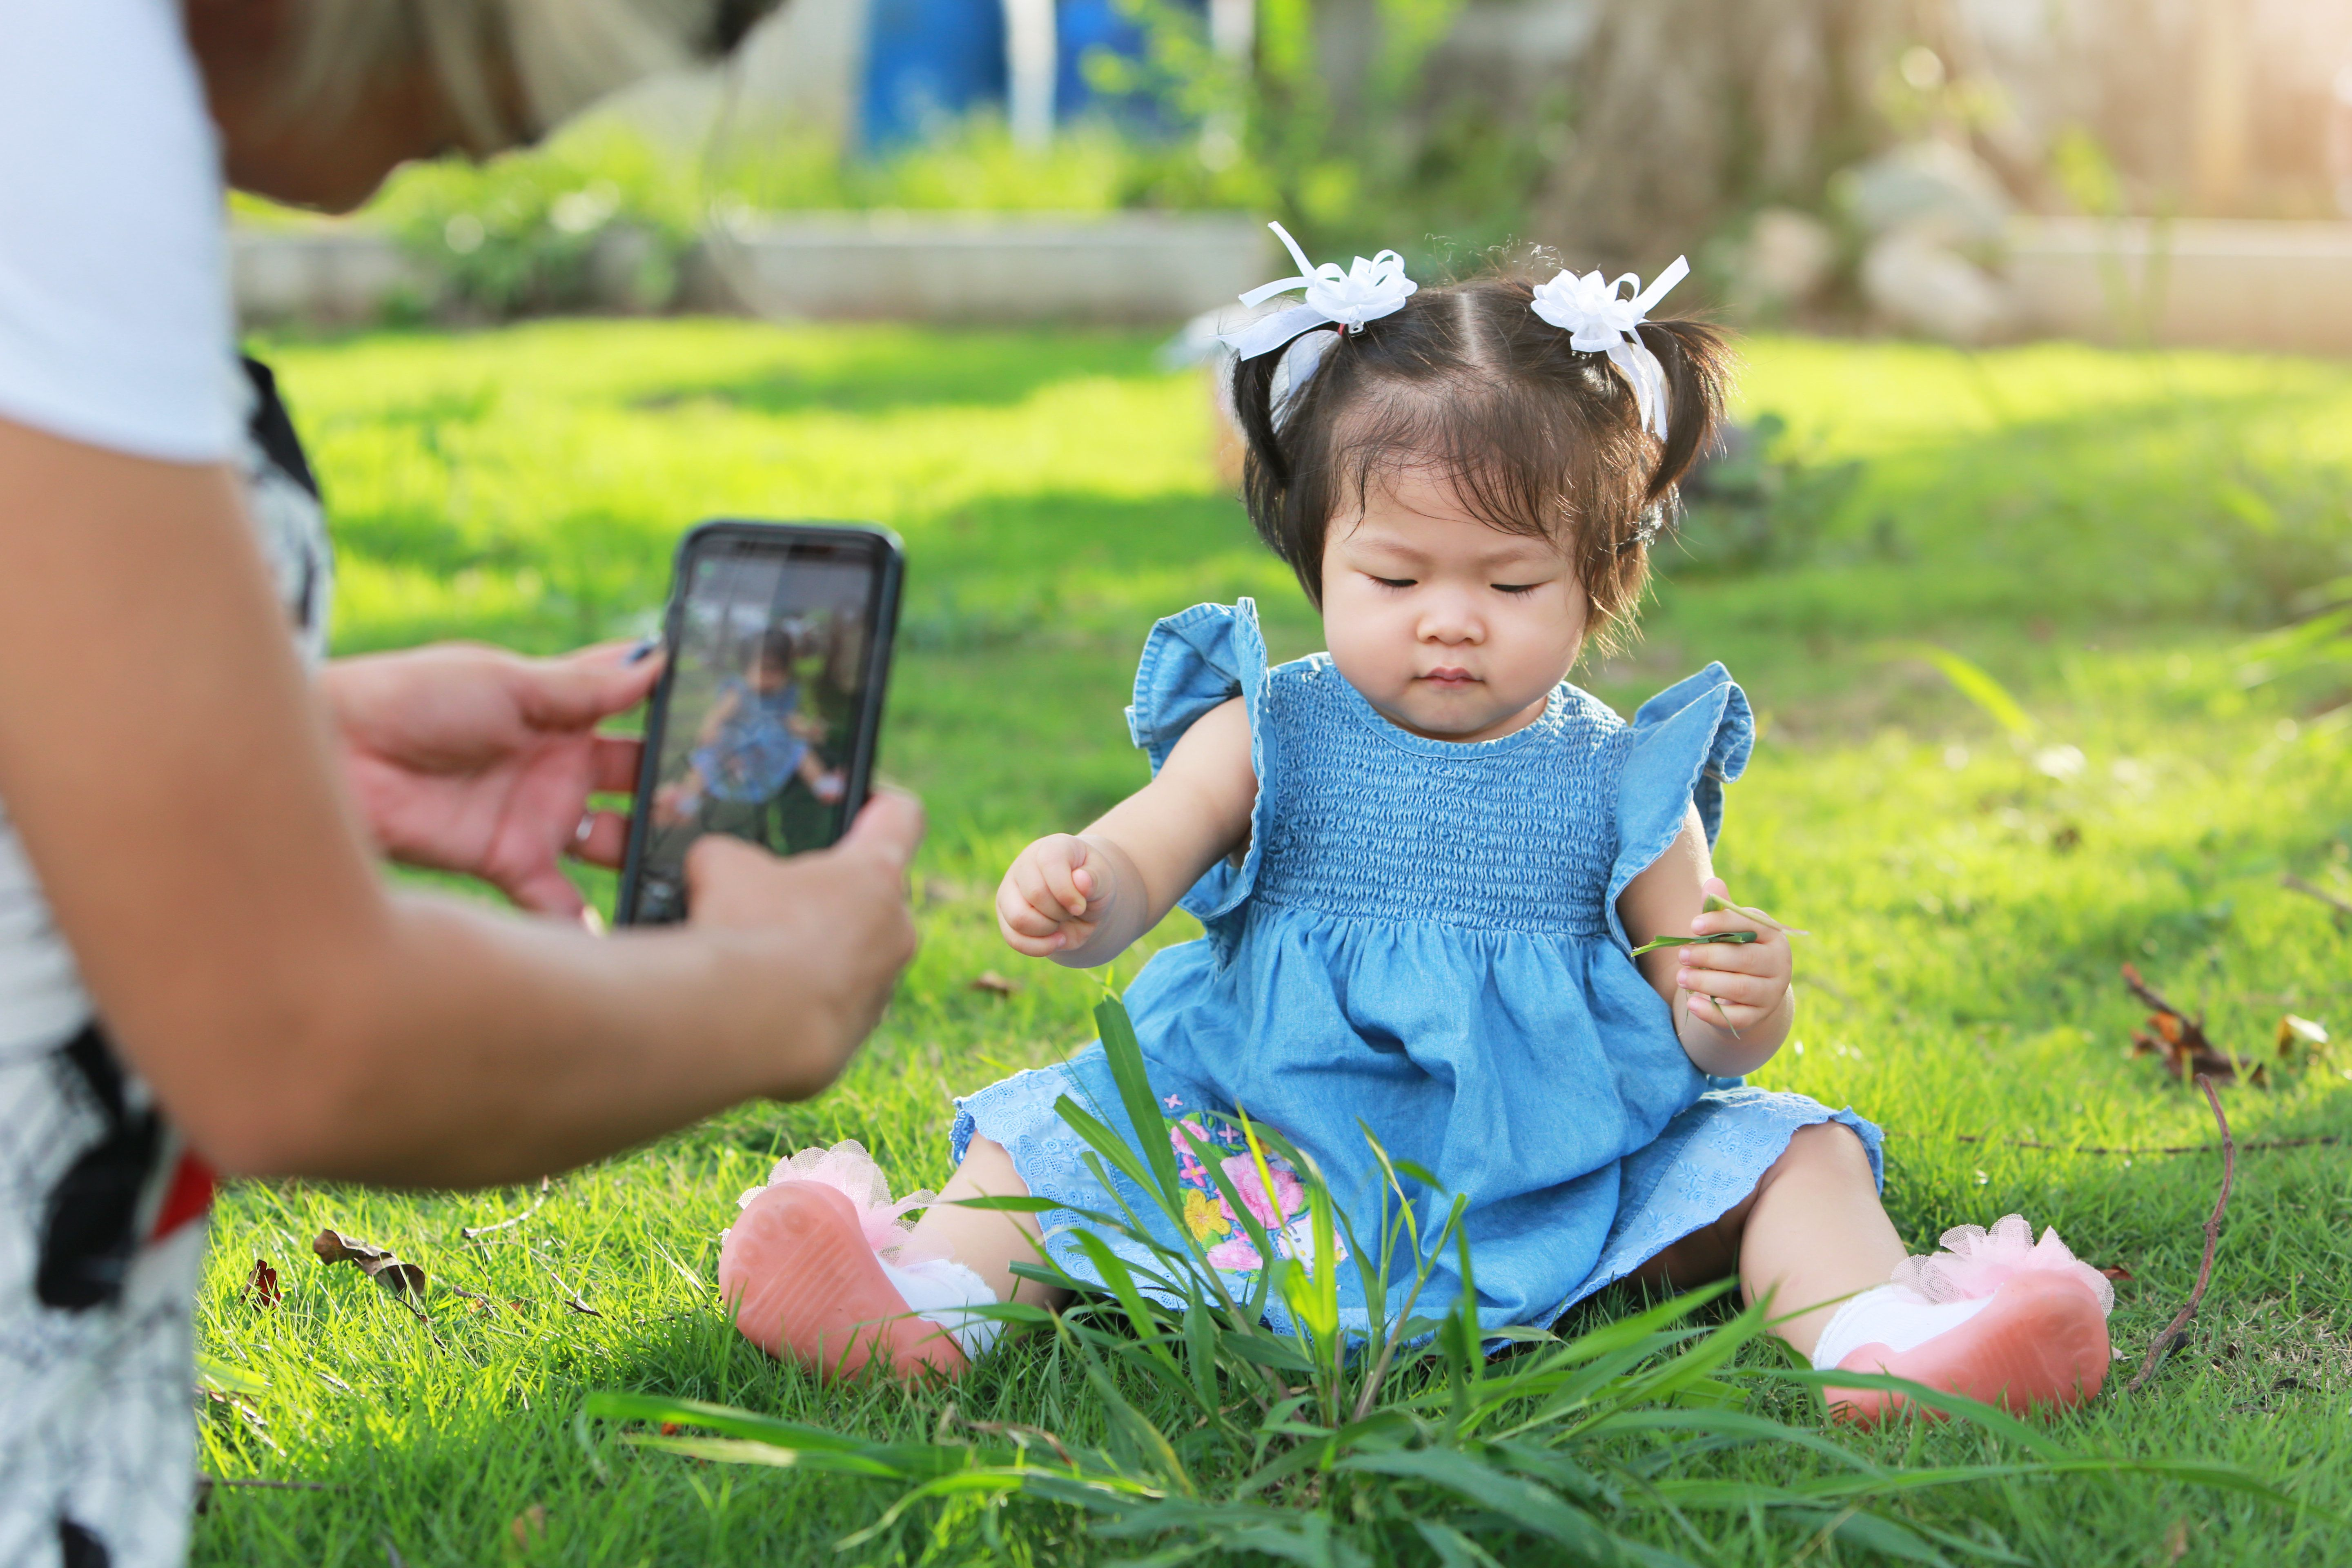 There Will Be 1300 Images Of Your Child Online By The Time They're 13 – Posted By You